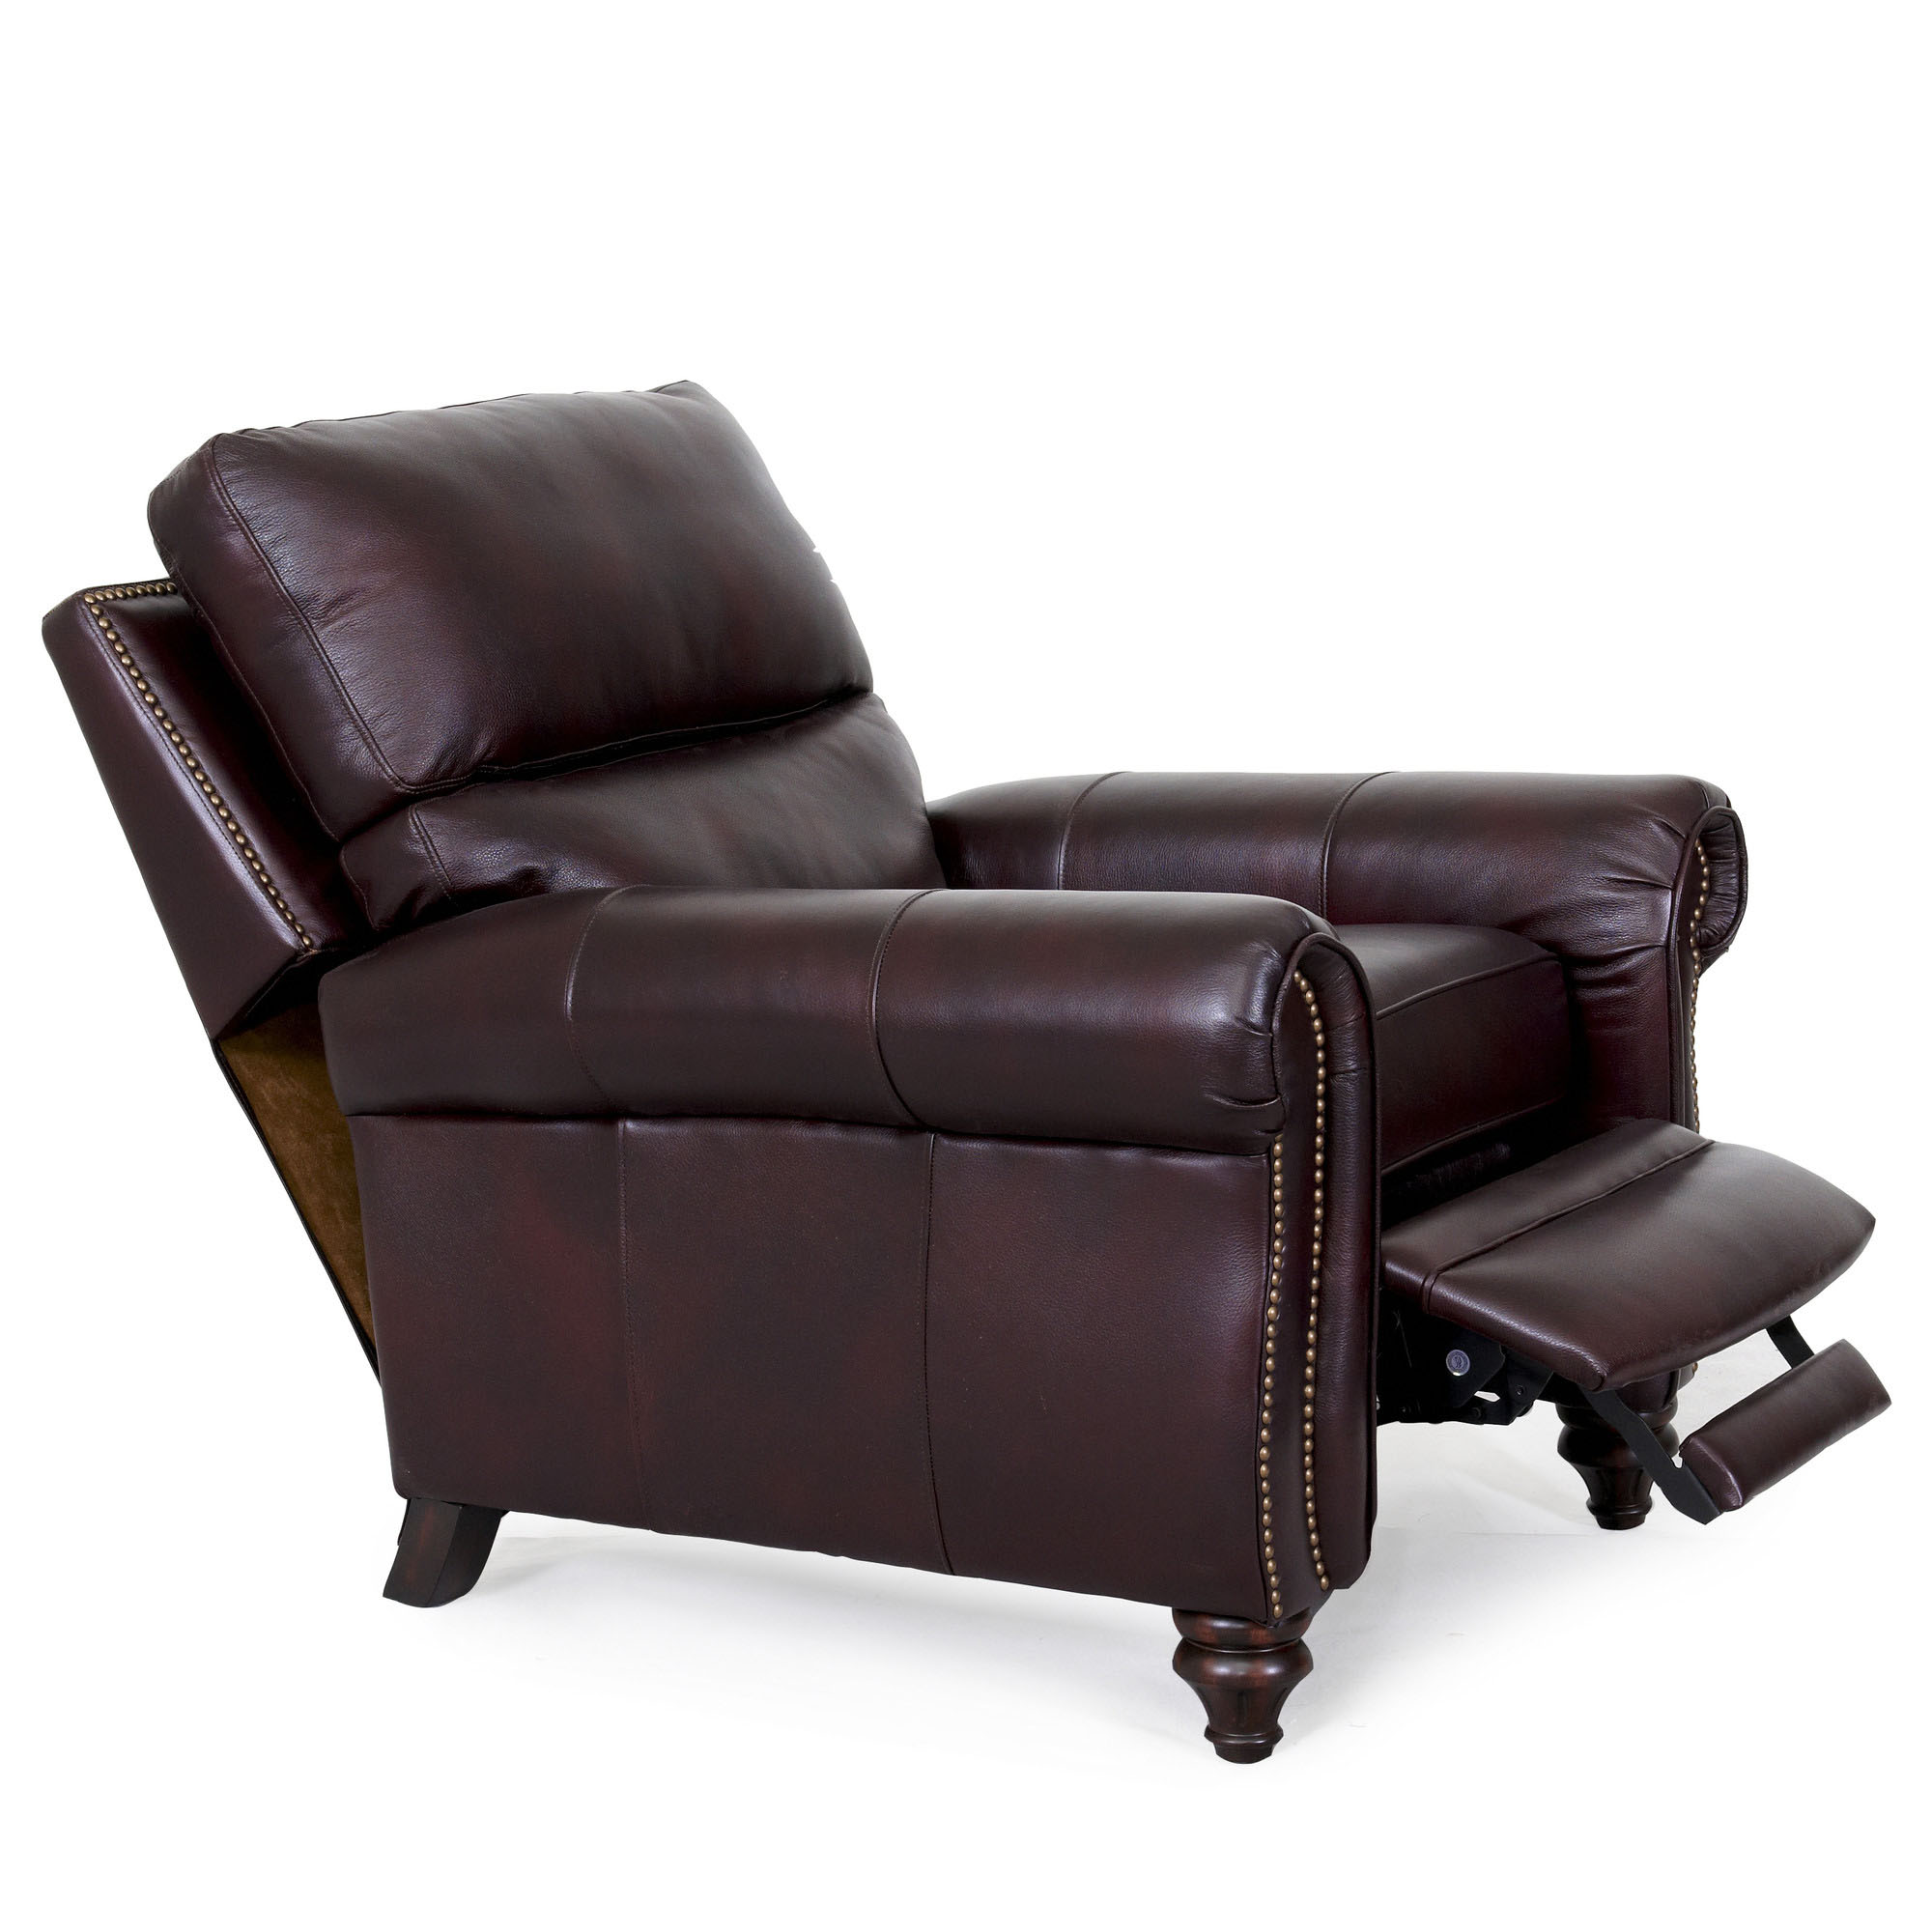 tantra chair dimensions width office customer reviews barcalounger dalton ii recliner leather